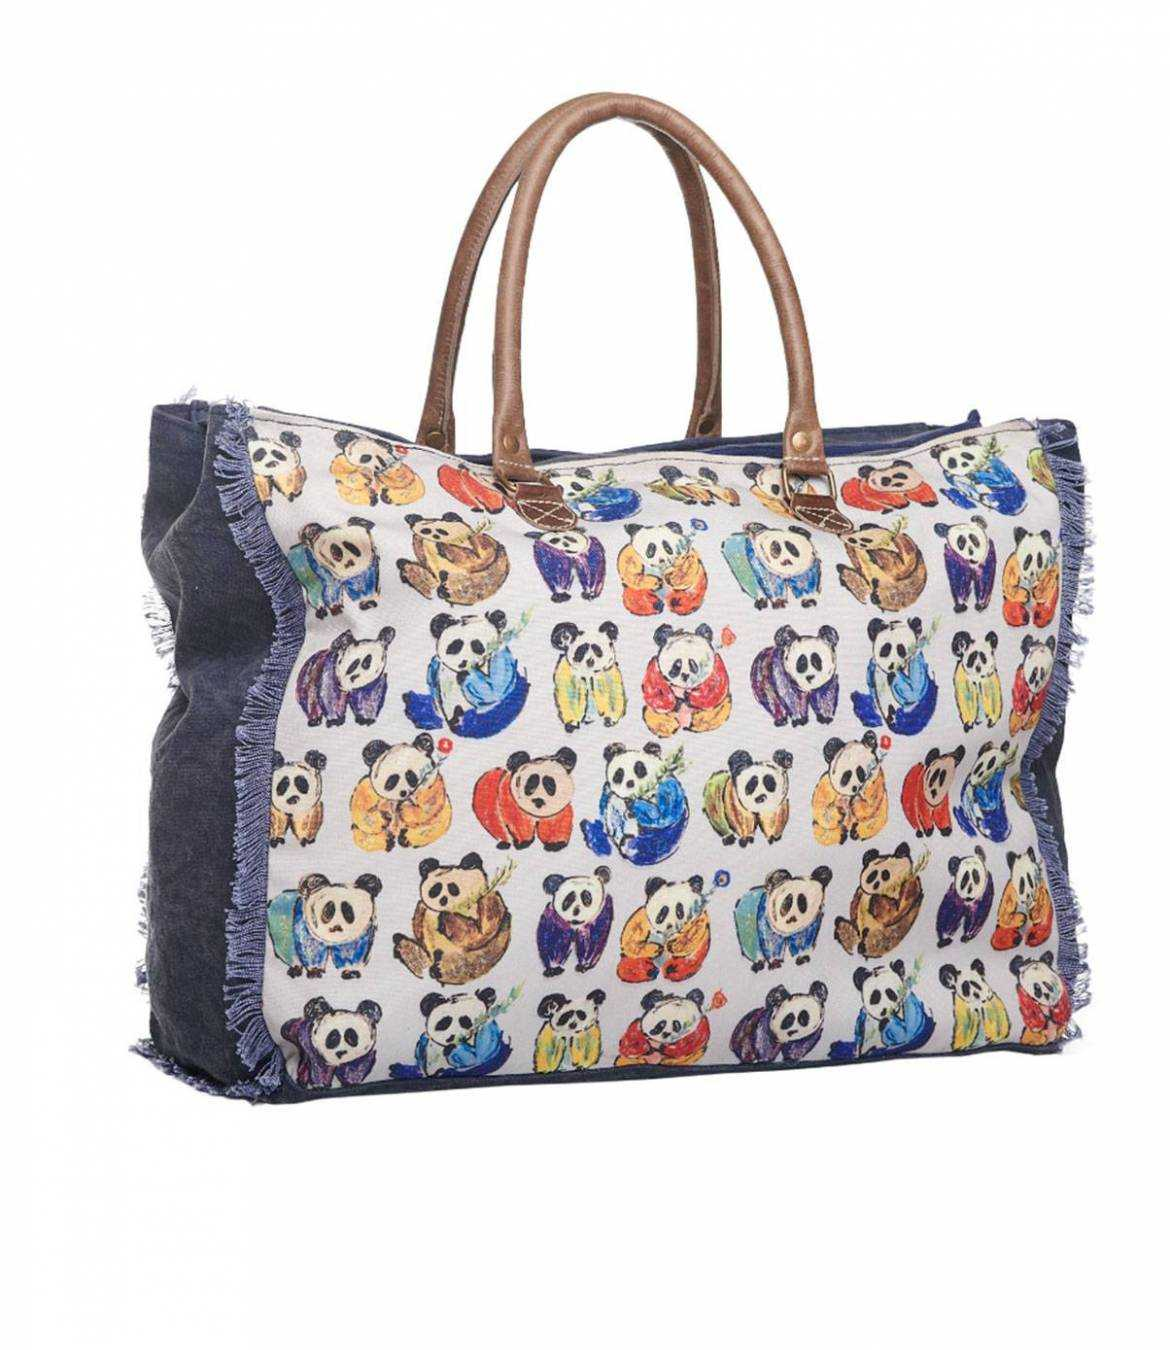 TRAVEL Travel bag in Polyester, Cotton, Leather for Women 50x40x20 cm Storiatipic - 3